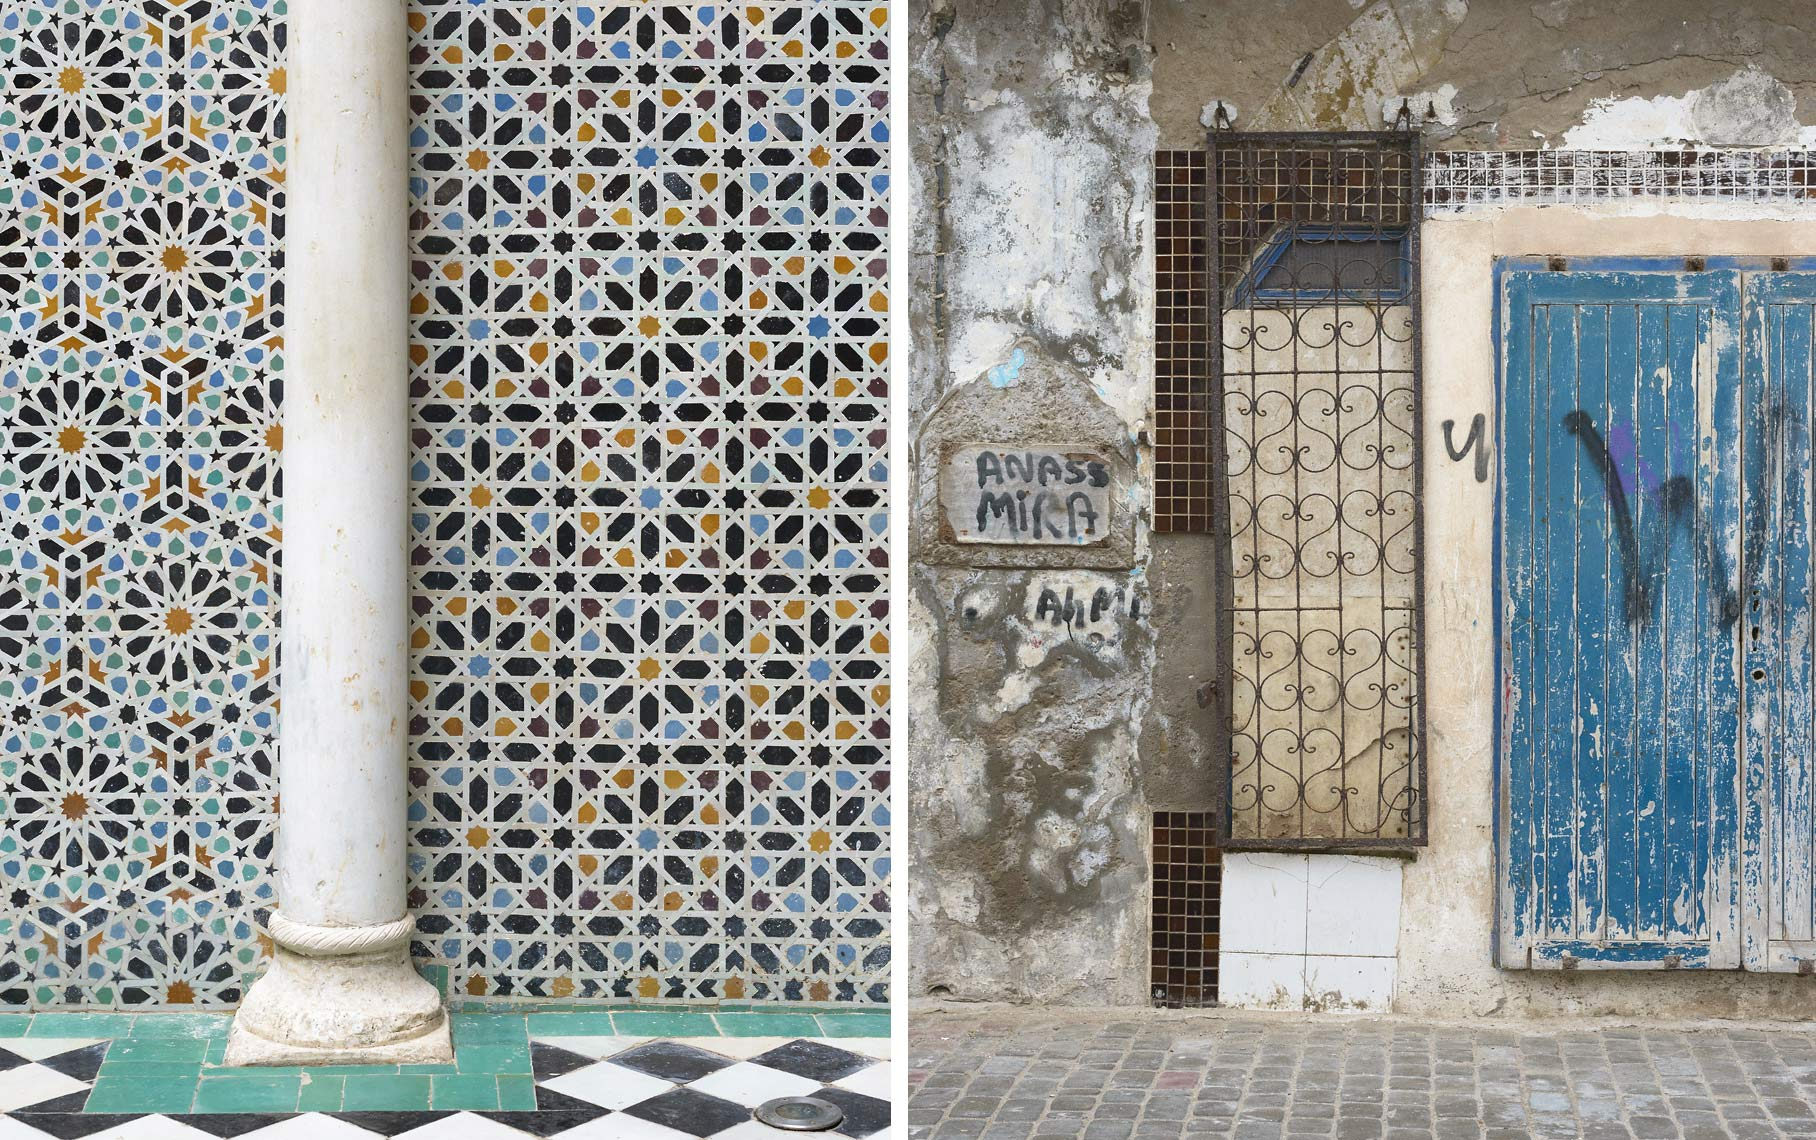 Madrassa-tile_and_street-grafiti-combo2